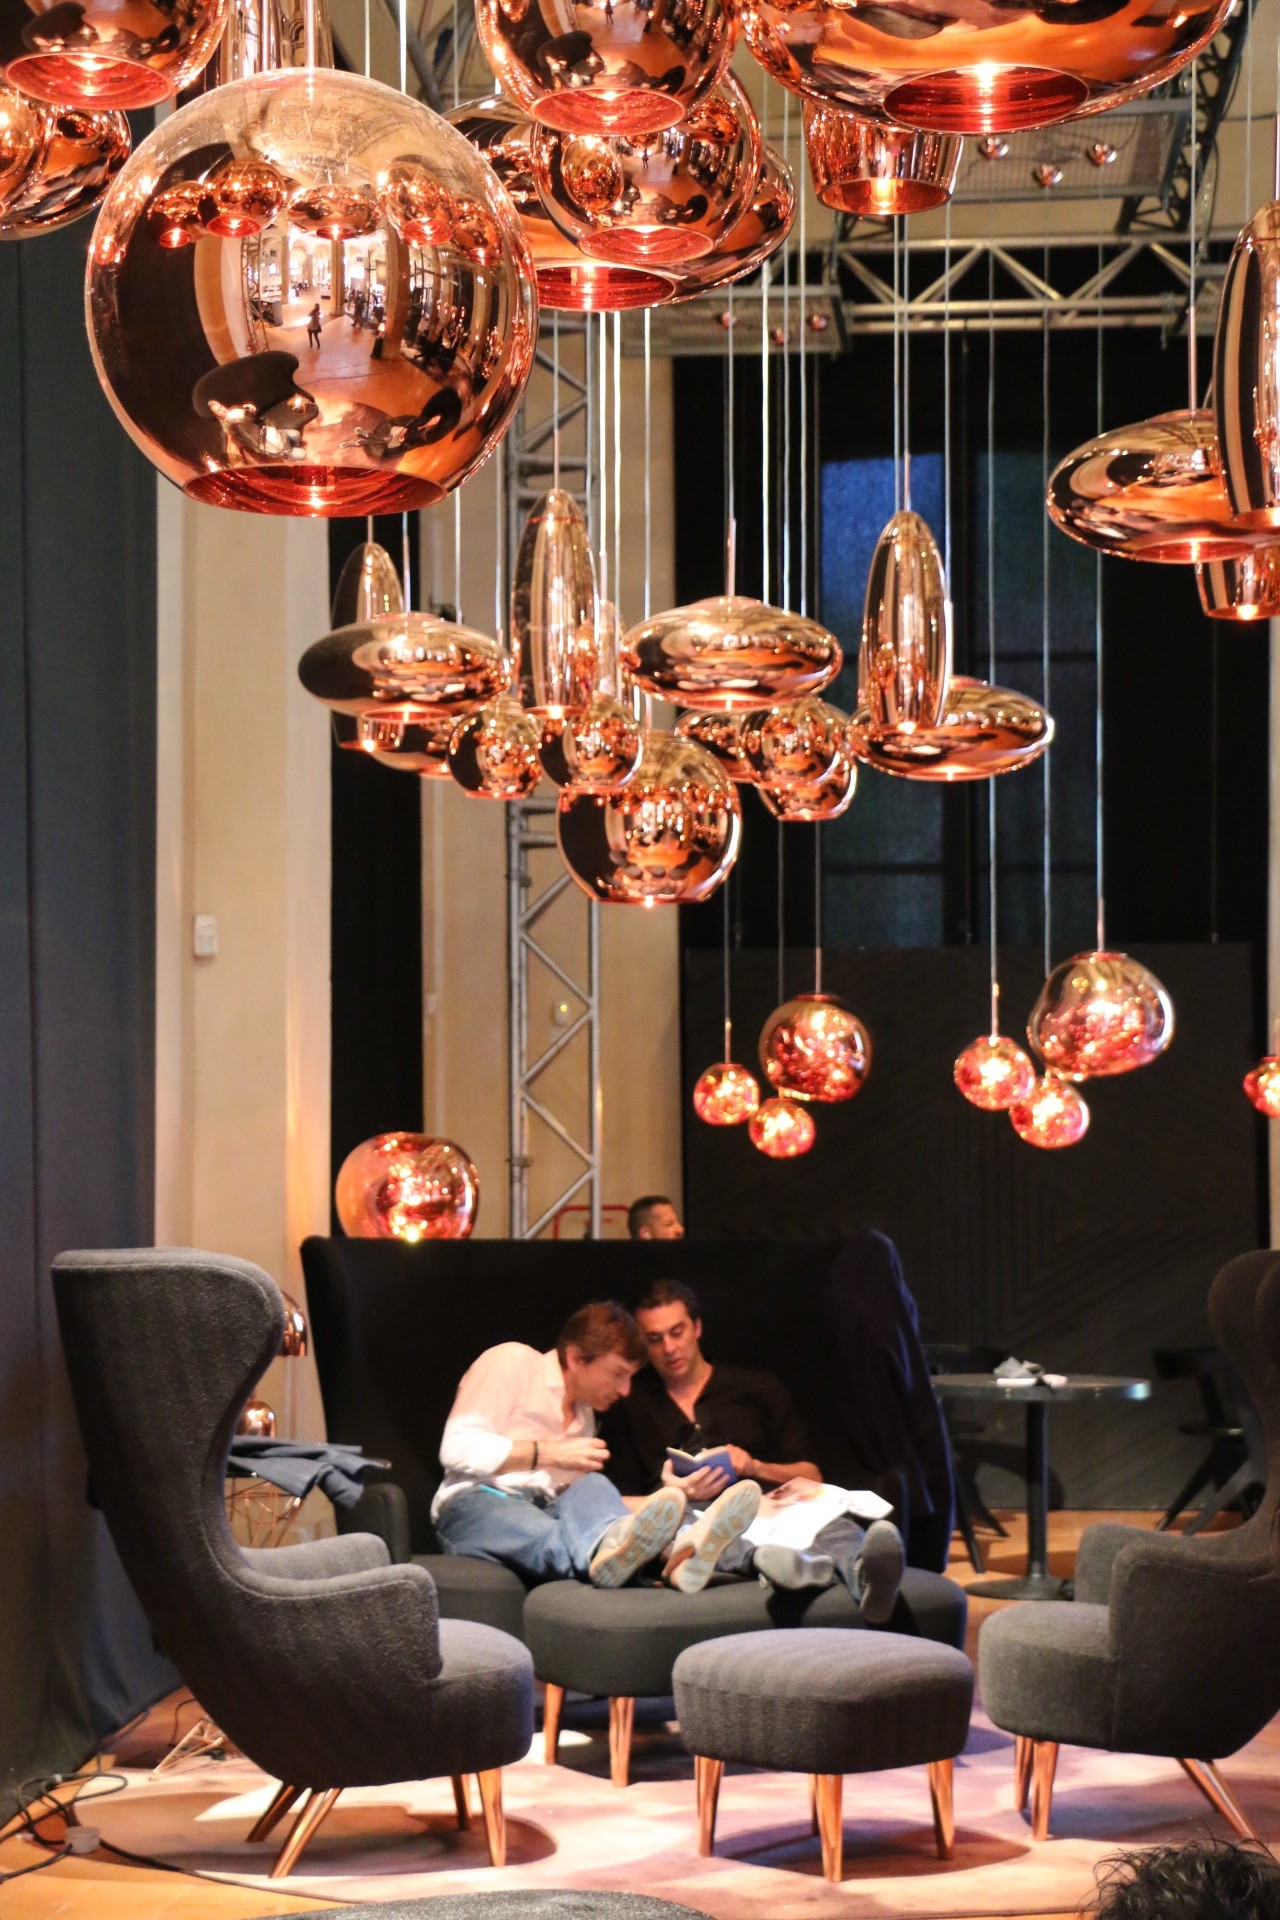 Milano Design Week: Salone del Mobile & Fuorisalone 2016 by Design Bestseller